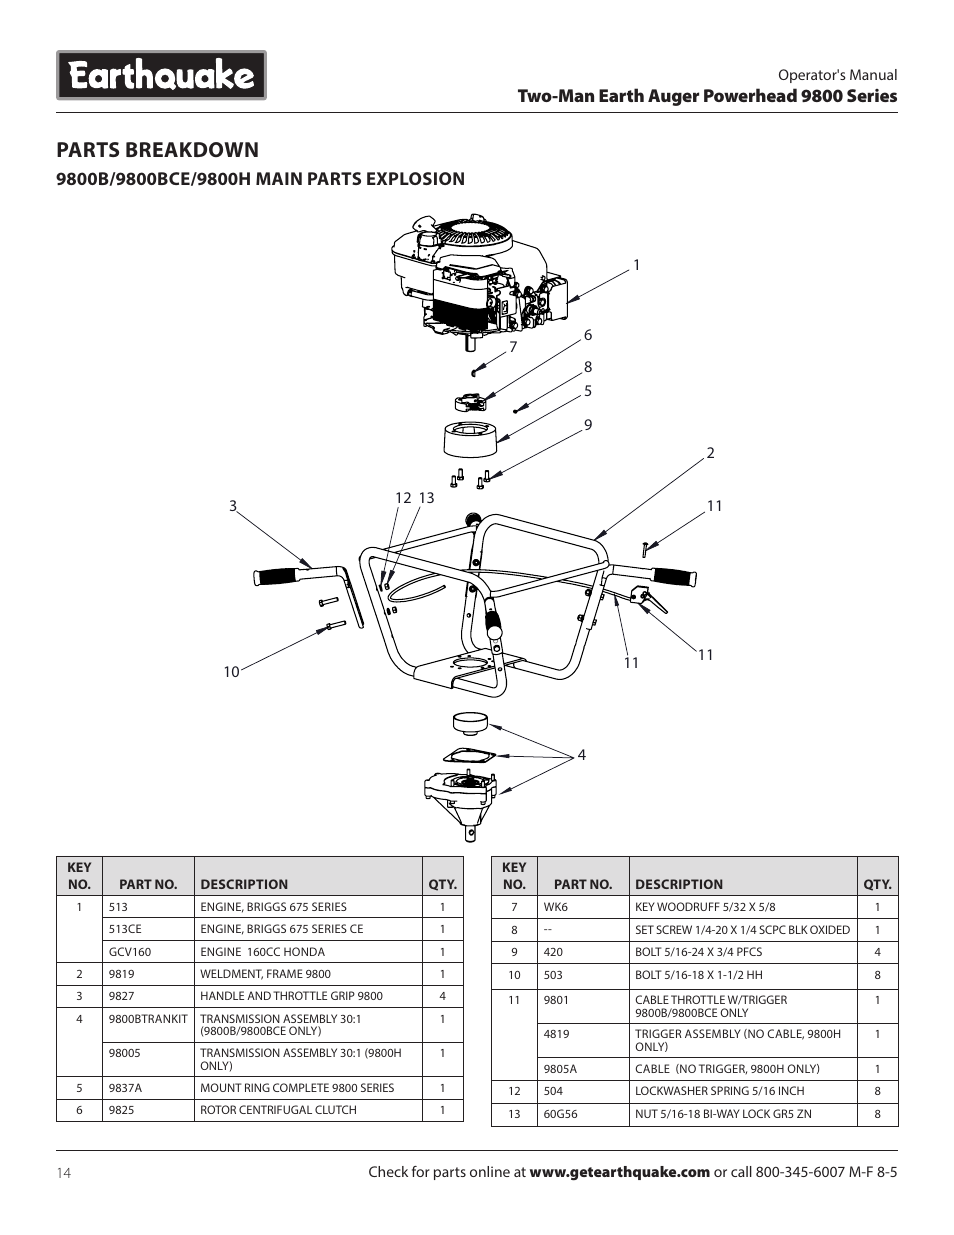 Parts Breakdown Two Man Earth Auger Powerhead 9800 Series